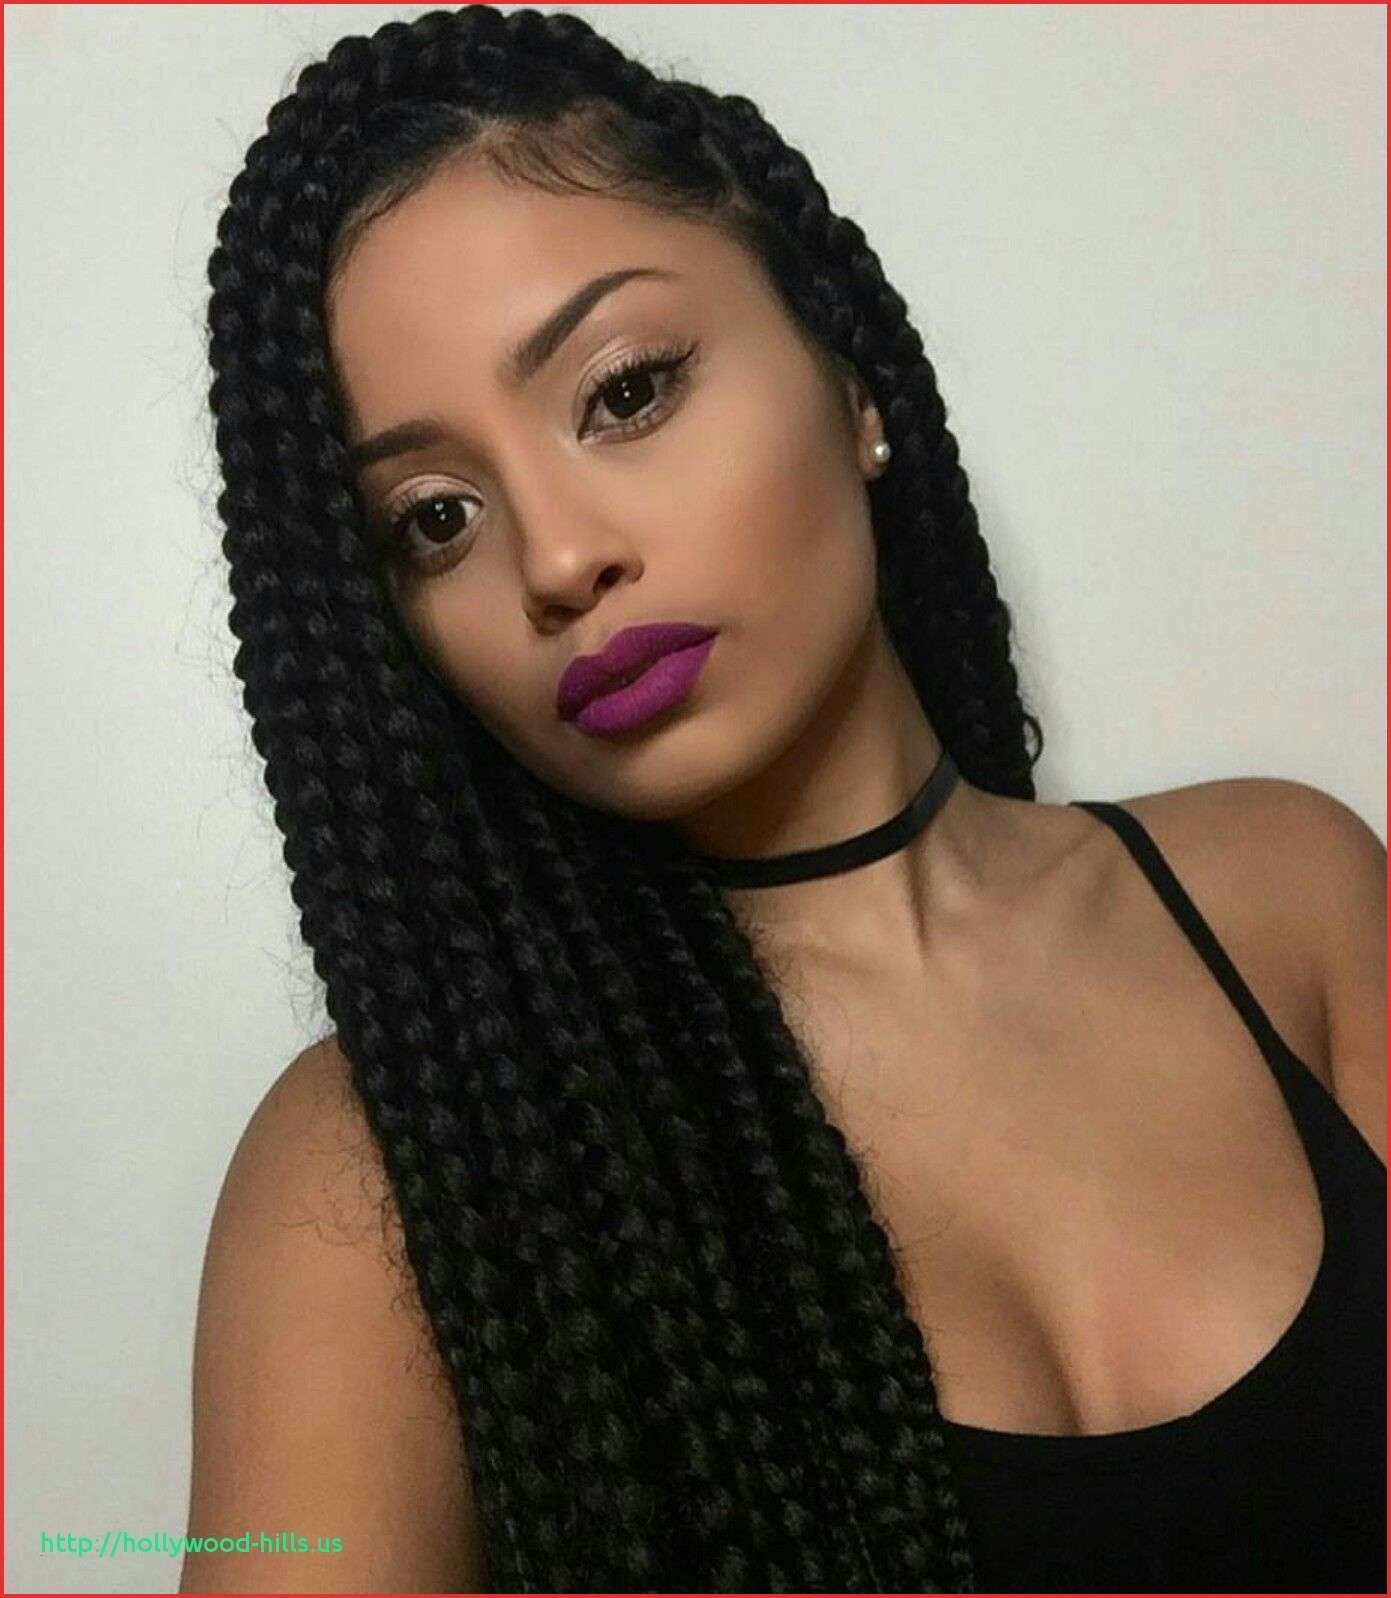 6 Year Old Hairstyles Baddie Cute Haircuts For 11 Year Olds With Long Hair Hairstyles For Natural Hair Styles Box Braids Hairstyles Braided Hairstyles